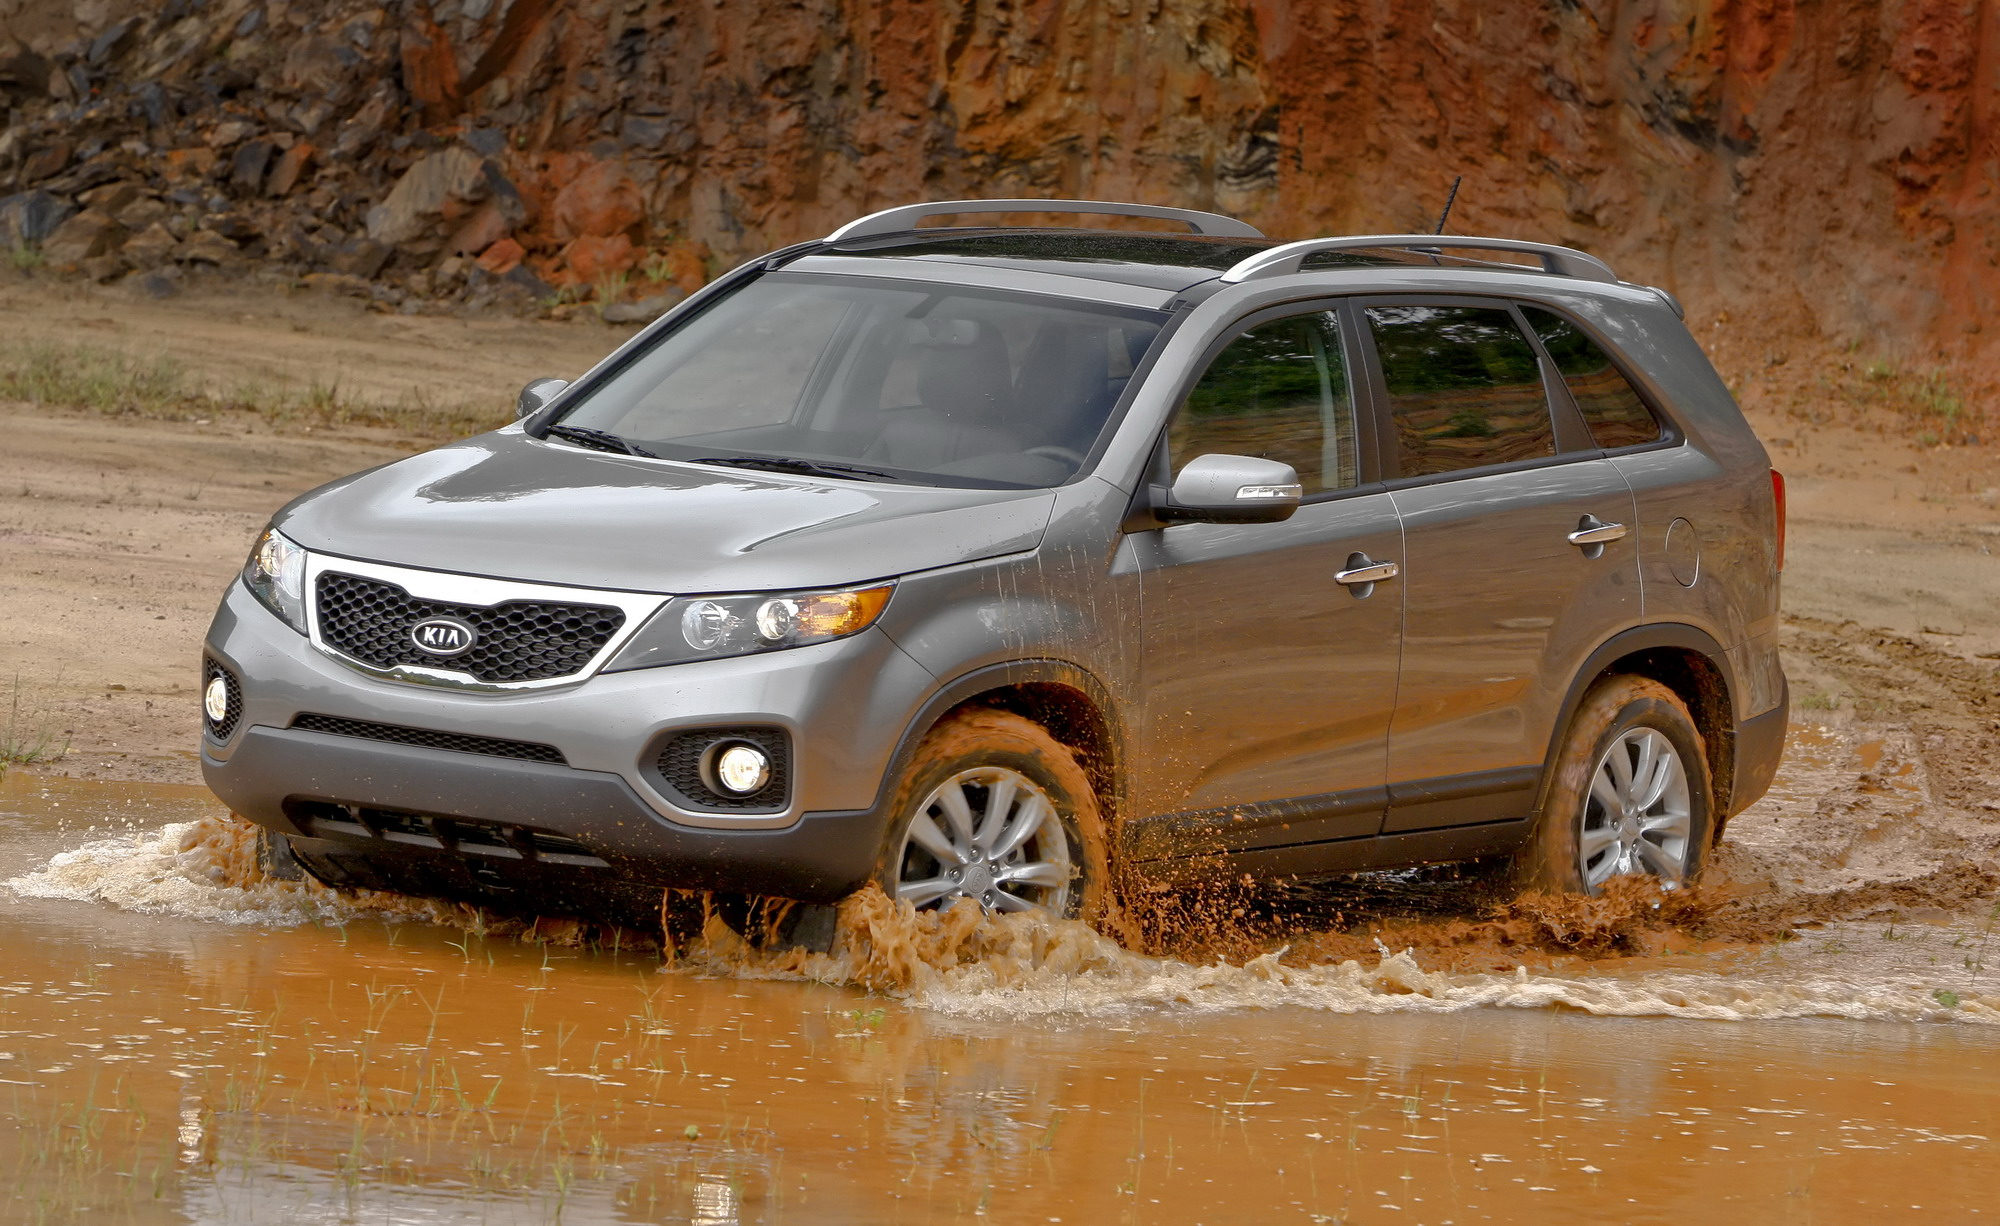 2011 Kia Sorento | Top Speed. »